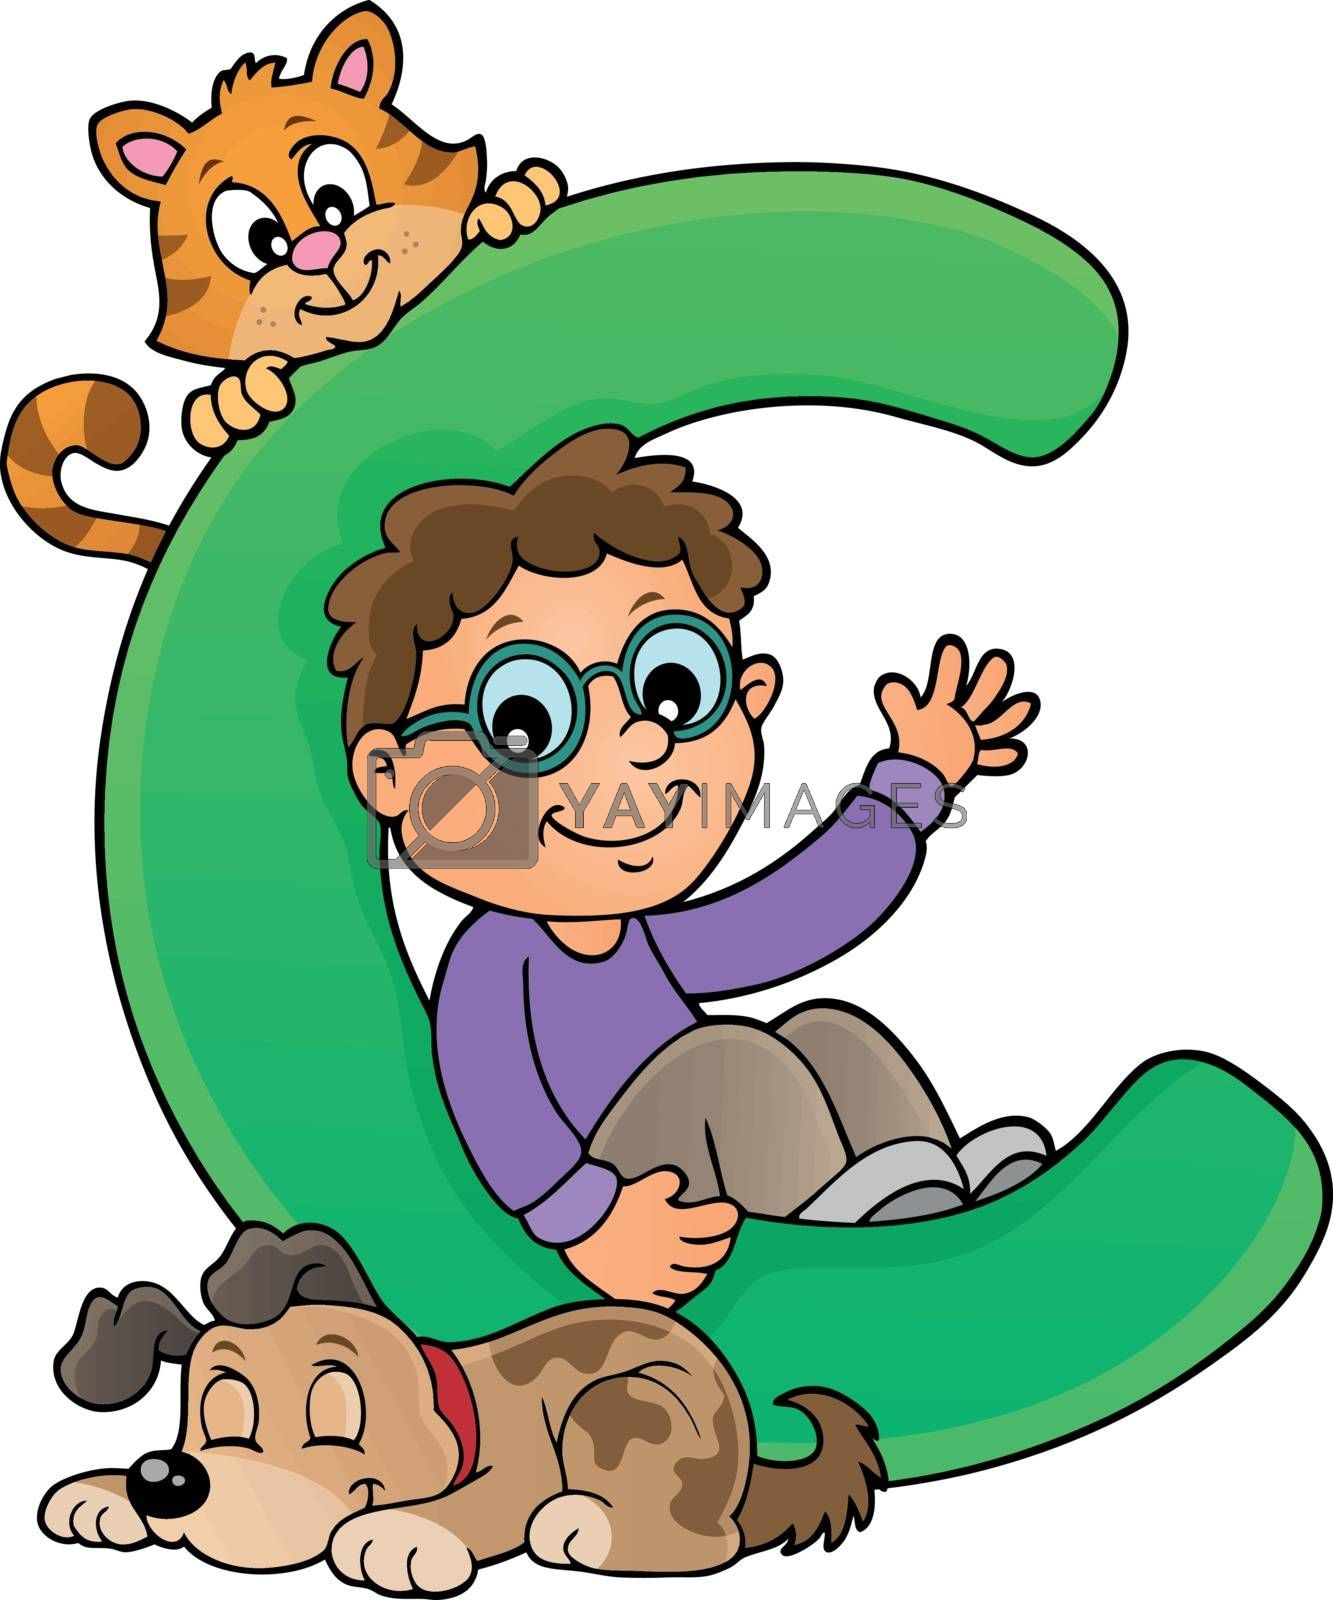 Boy and pets with letter C - eps10 vector illustration.